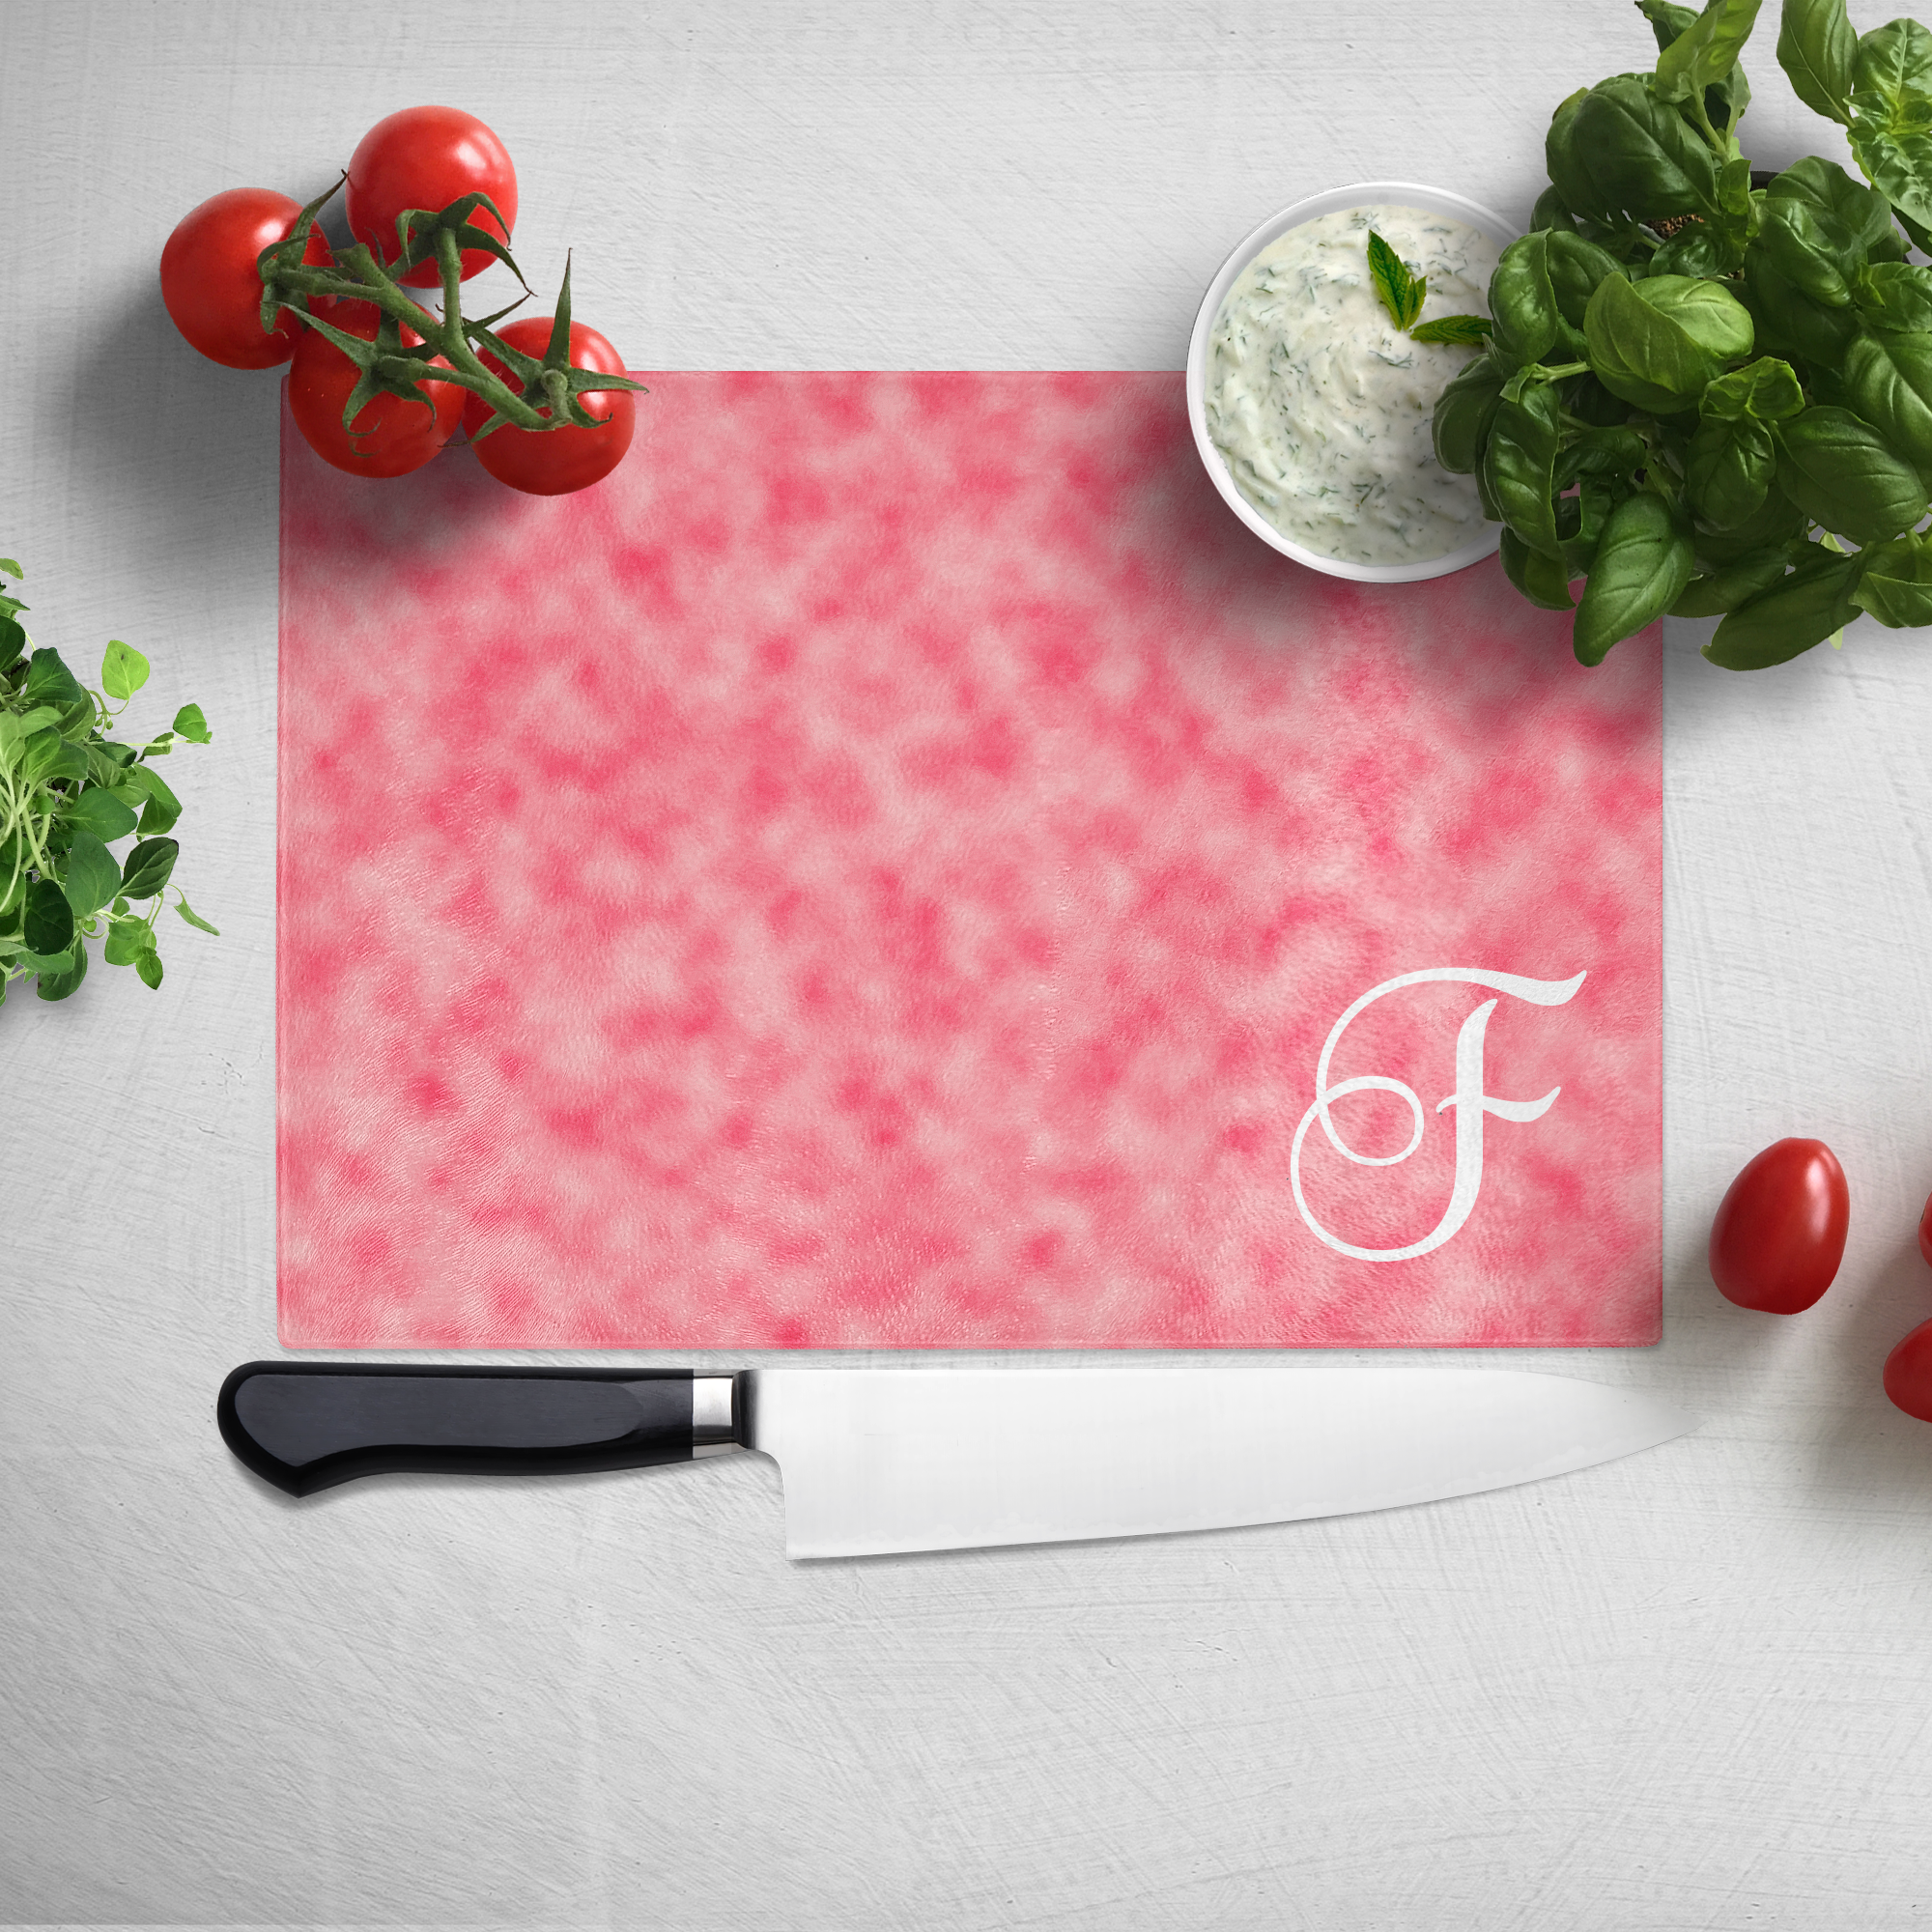 Pin On Personalized Cutting Boards